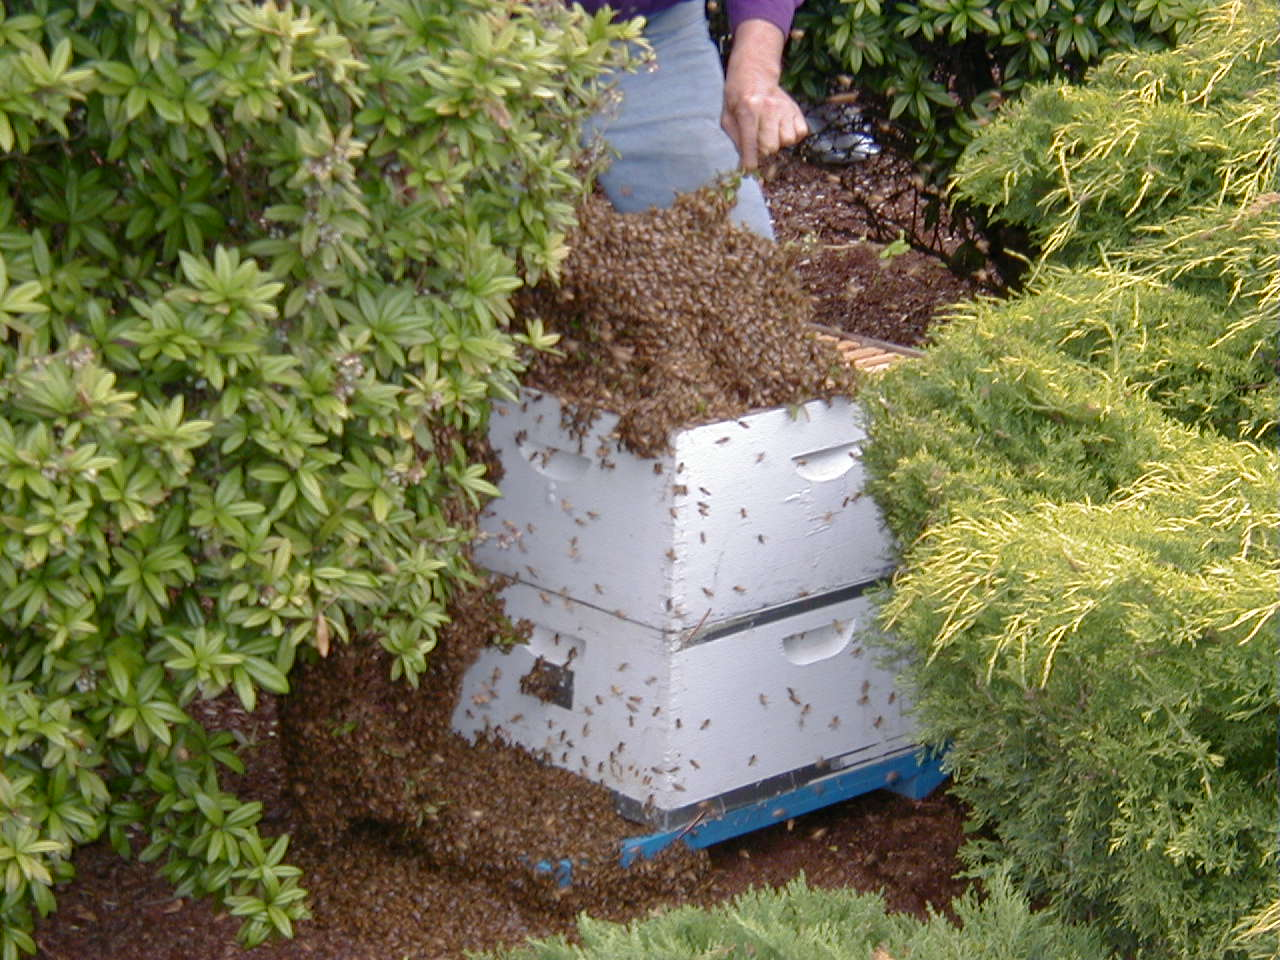 Helping the bees into the box